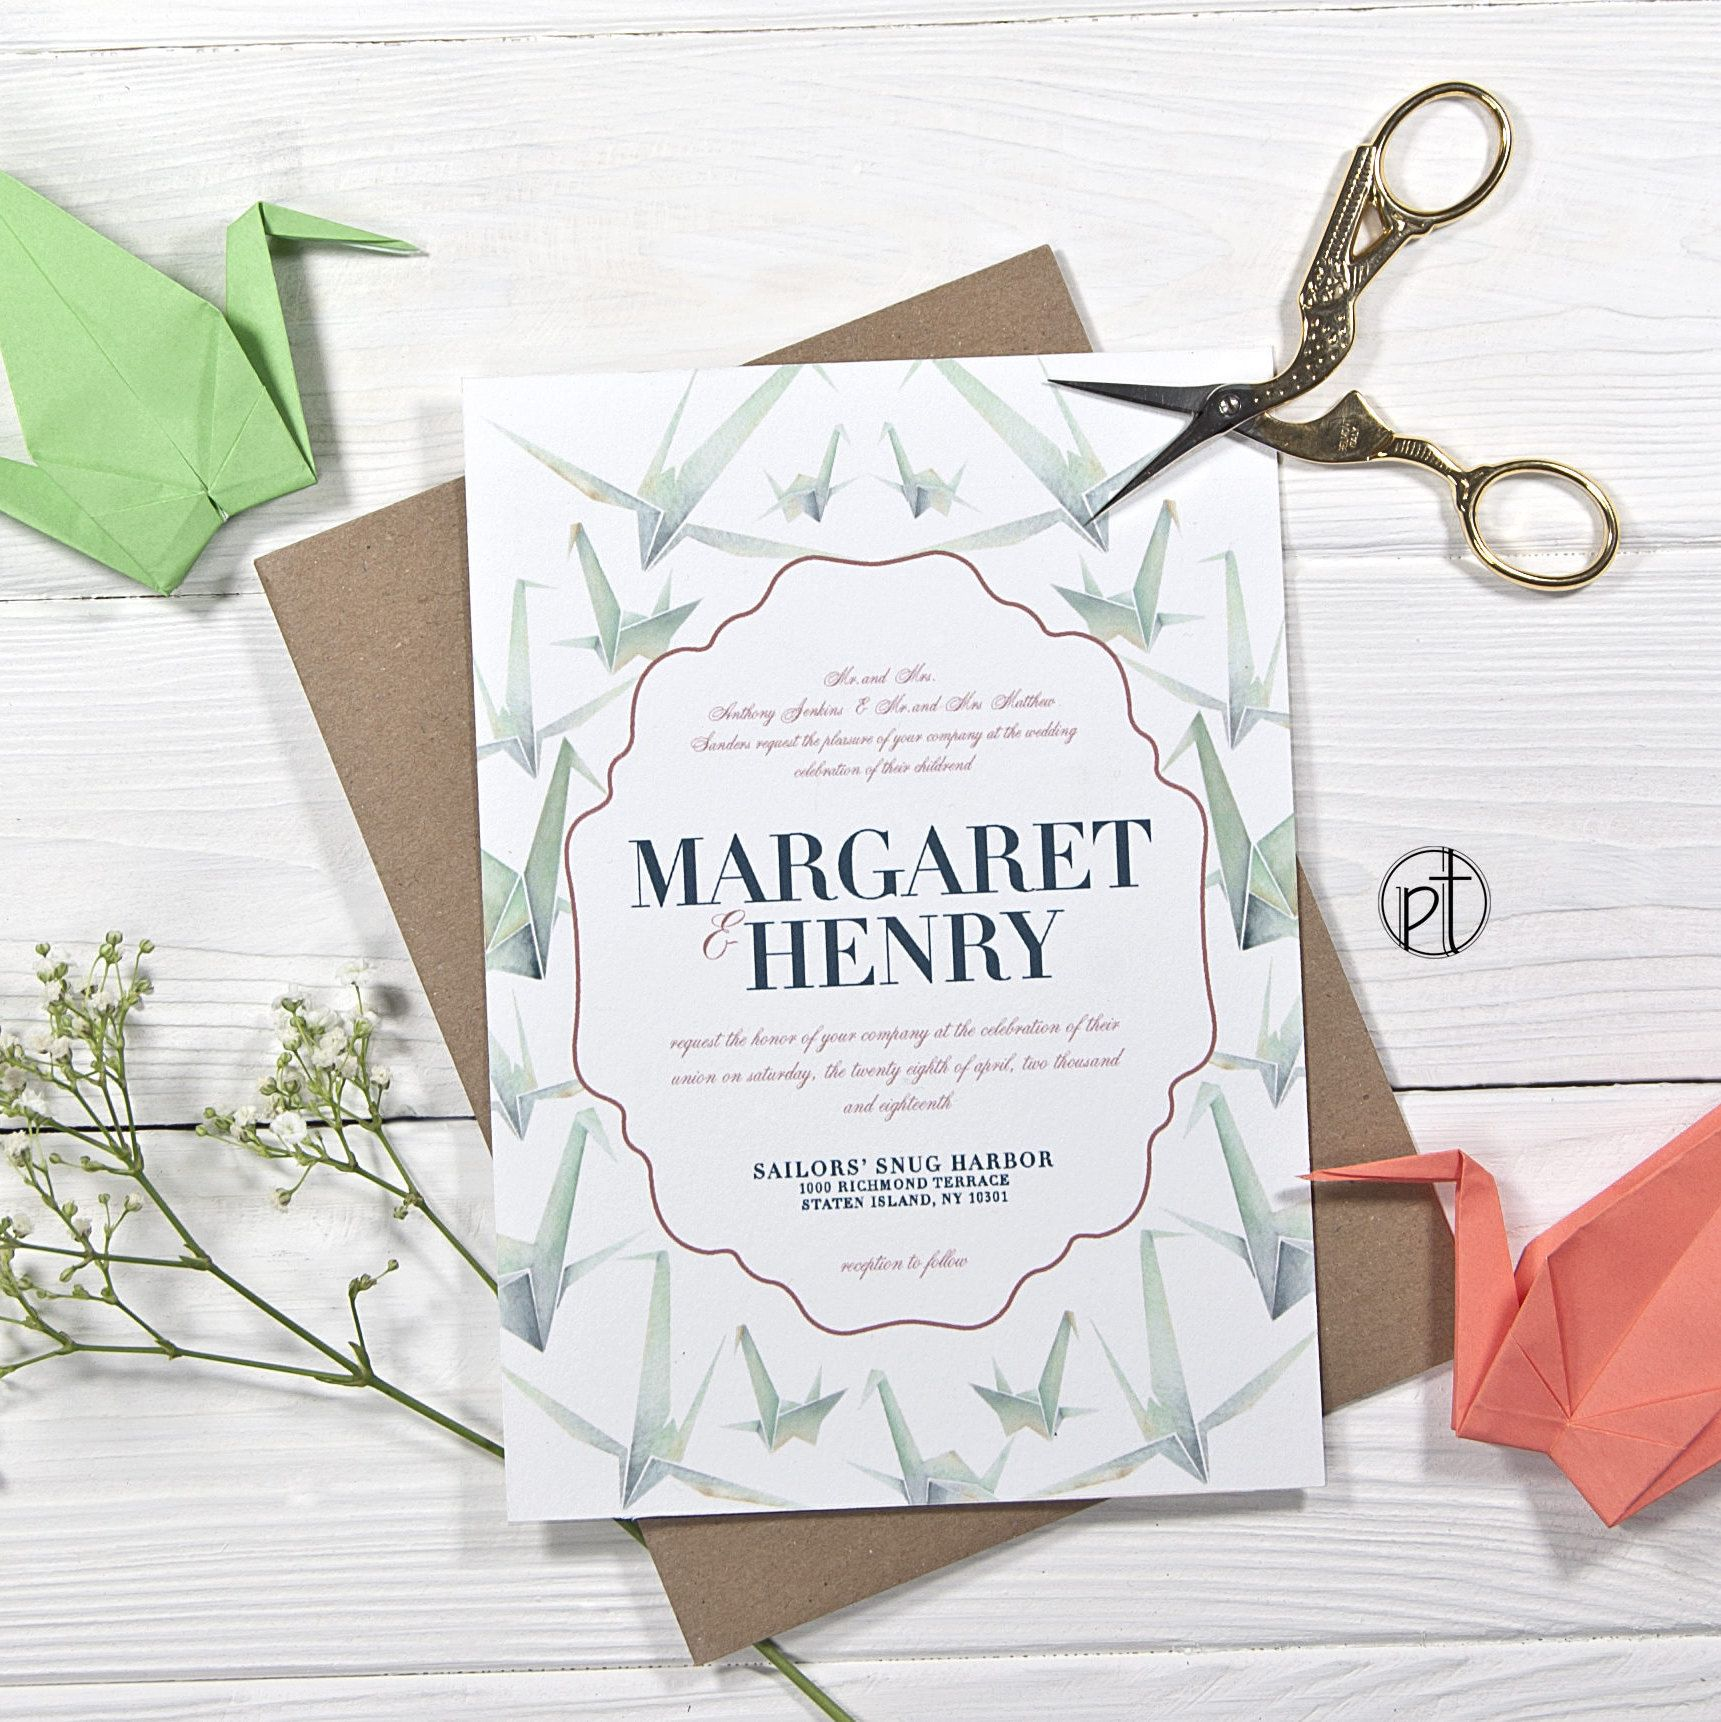 Origami Paper Crane Wedding Invitation Watercolor Illustration